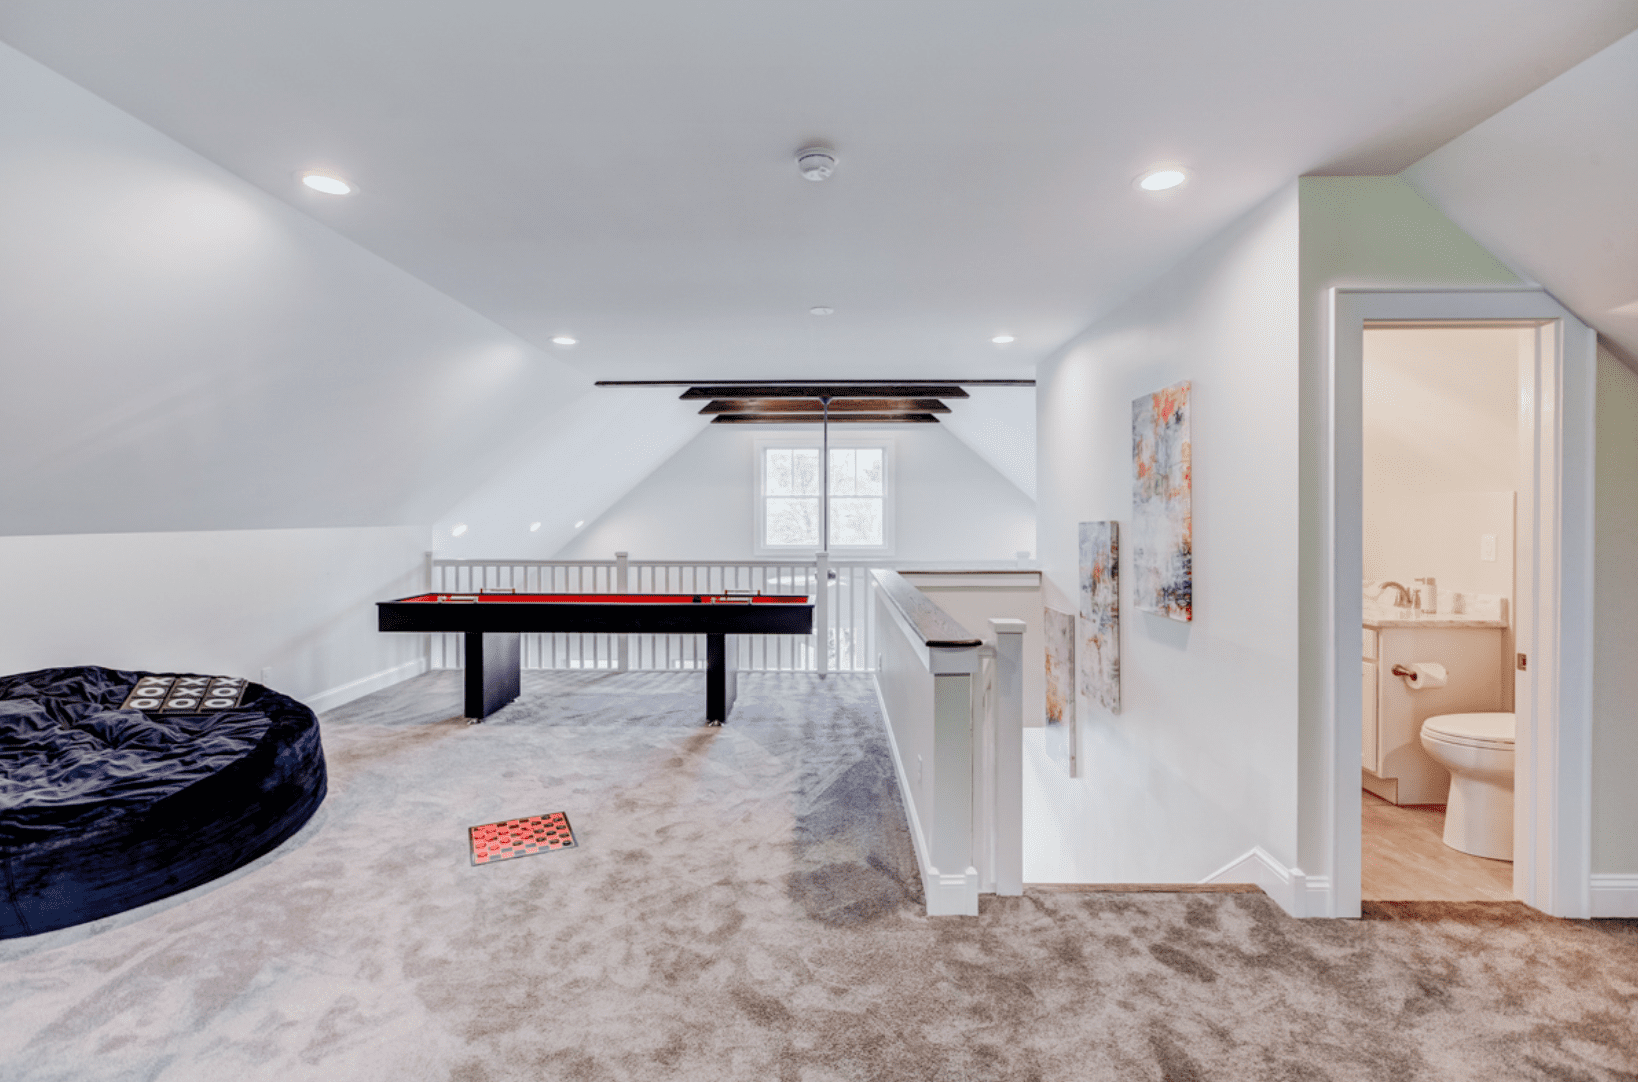 upper level game room with pool table, bathroom, and bean bag chair